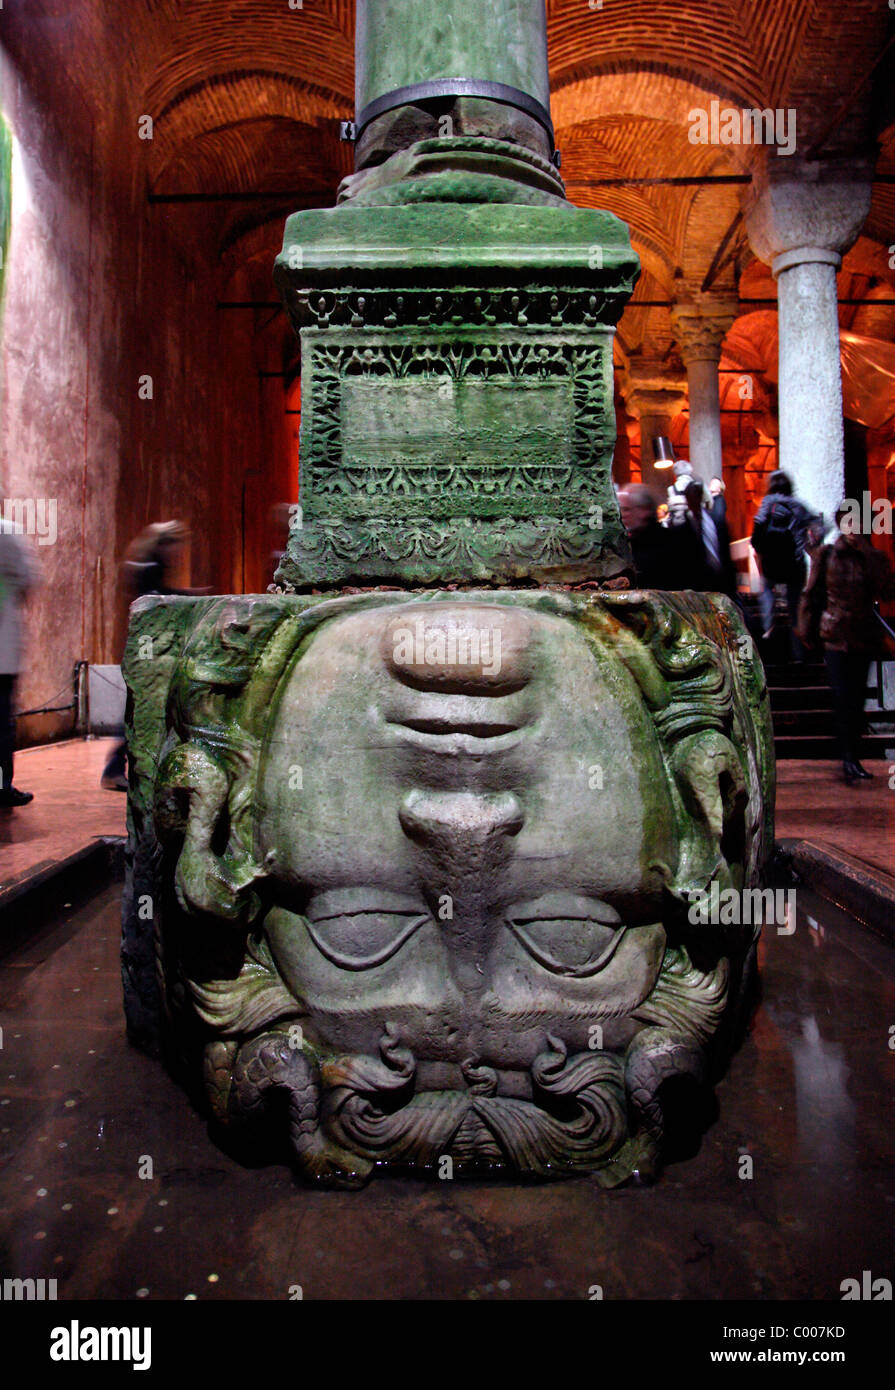 Turkey, Istanbul, the Basilica Cistern, a head of Medusa, turned upside down in one of the hundreds columns. - Stock Image